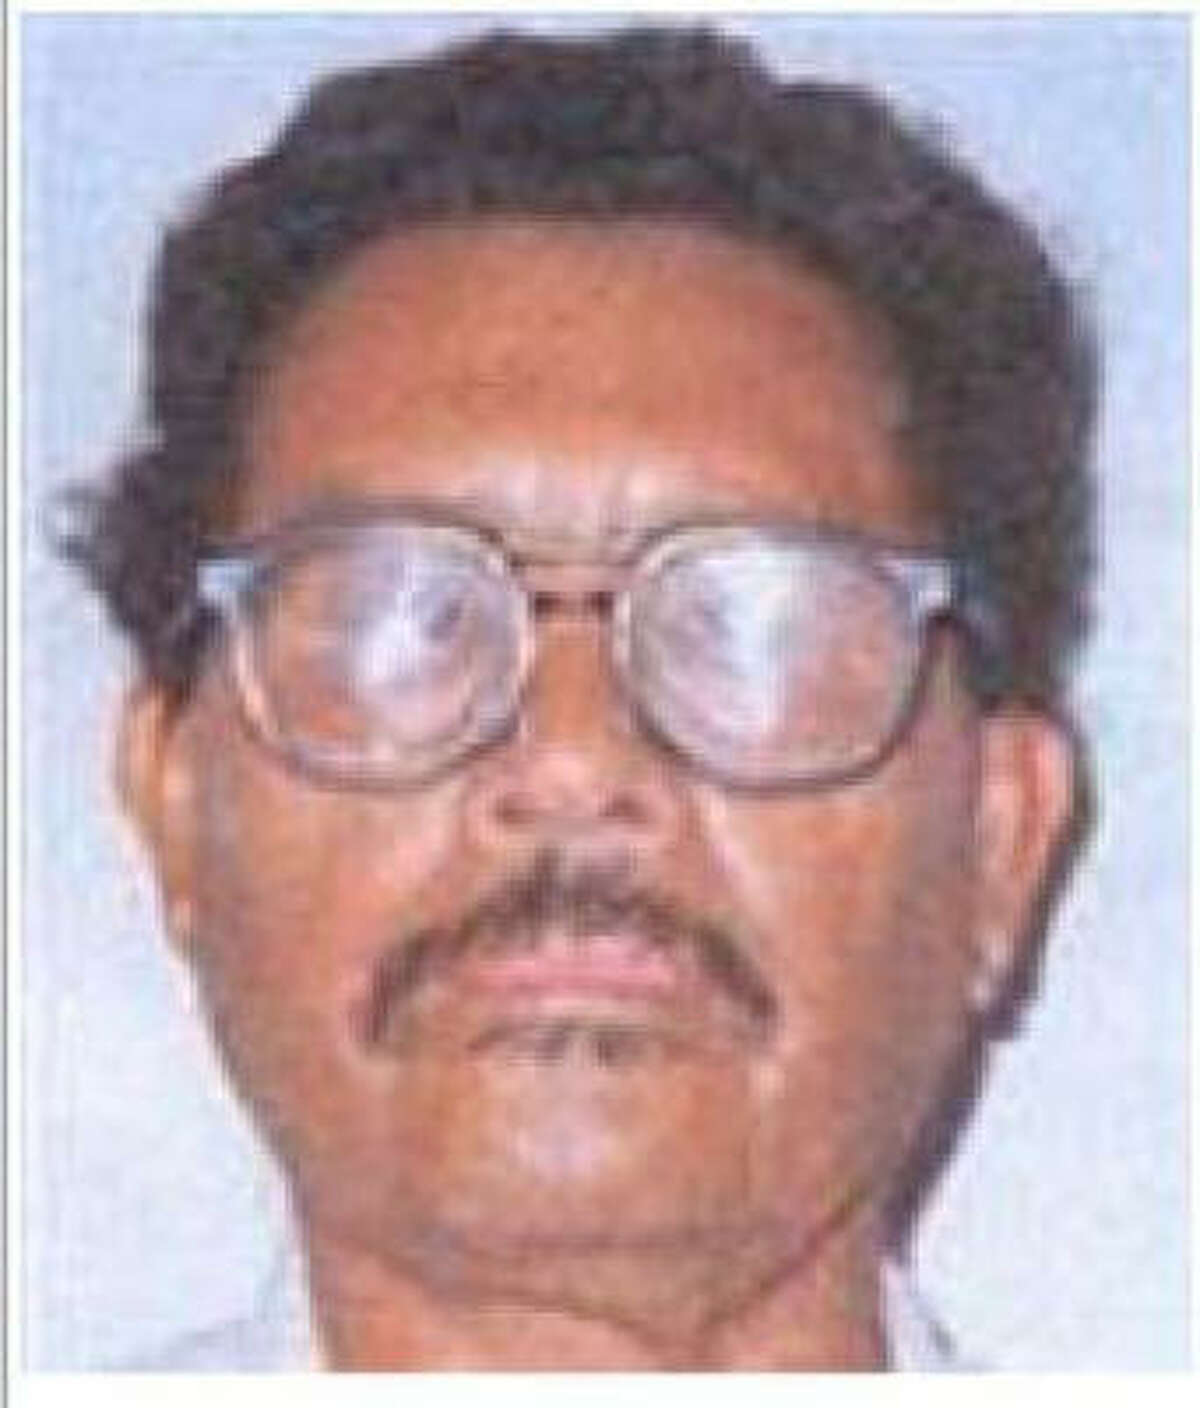 Luiz Amador, Jr.Race: White Sex: Male DOB: 07/16/1934 Height: 5'6